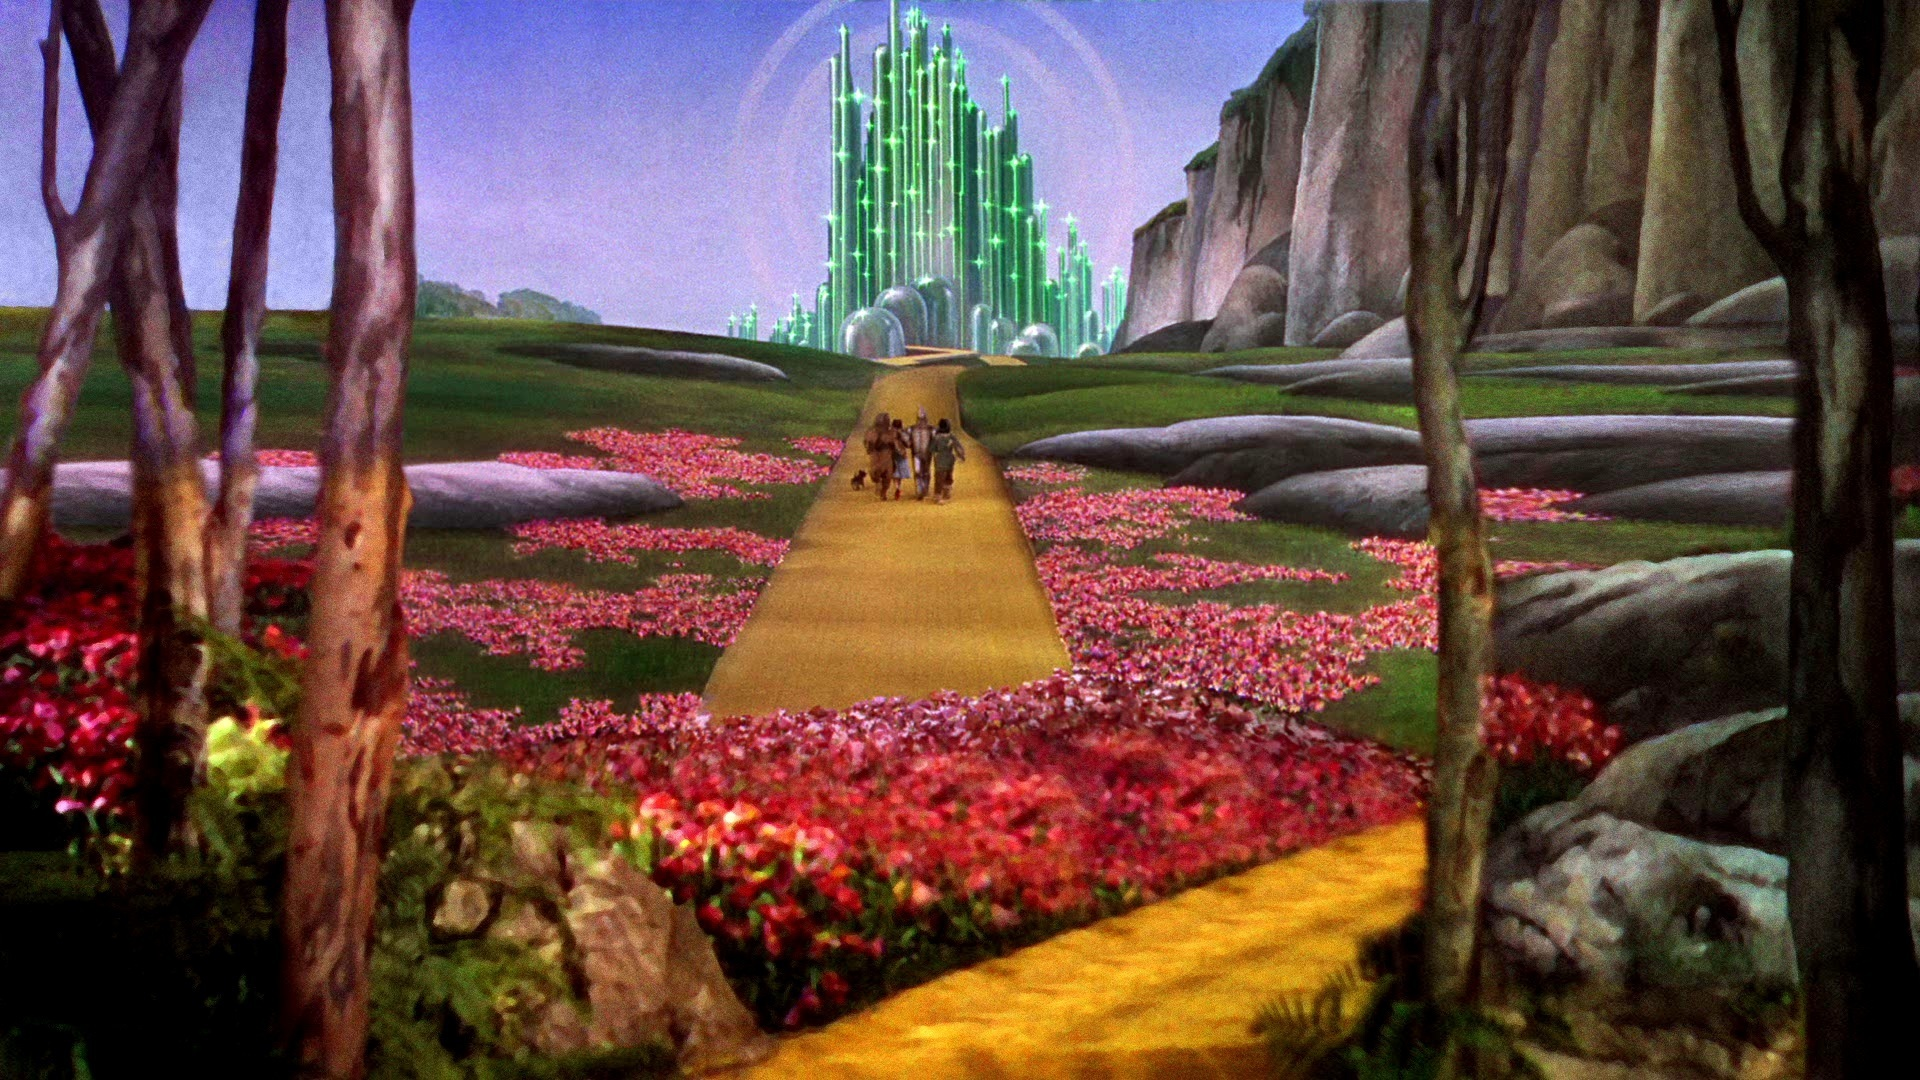 wizard of oz wallpaper 17912